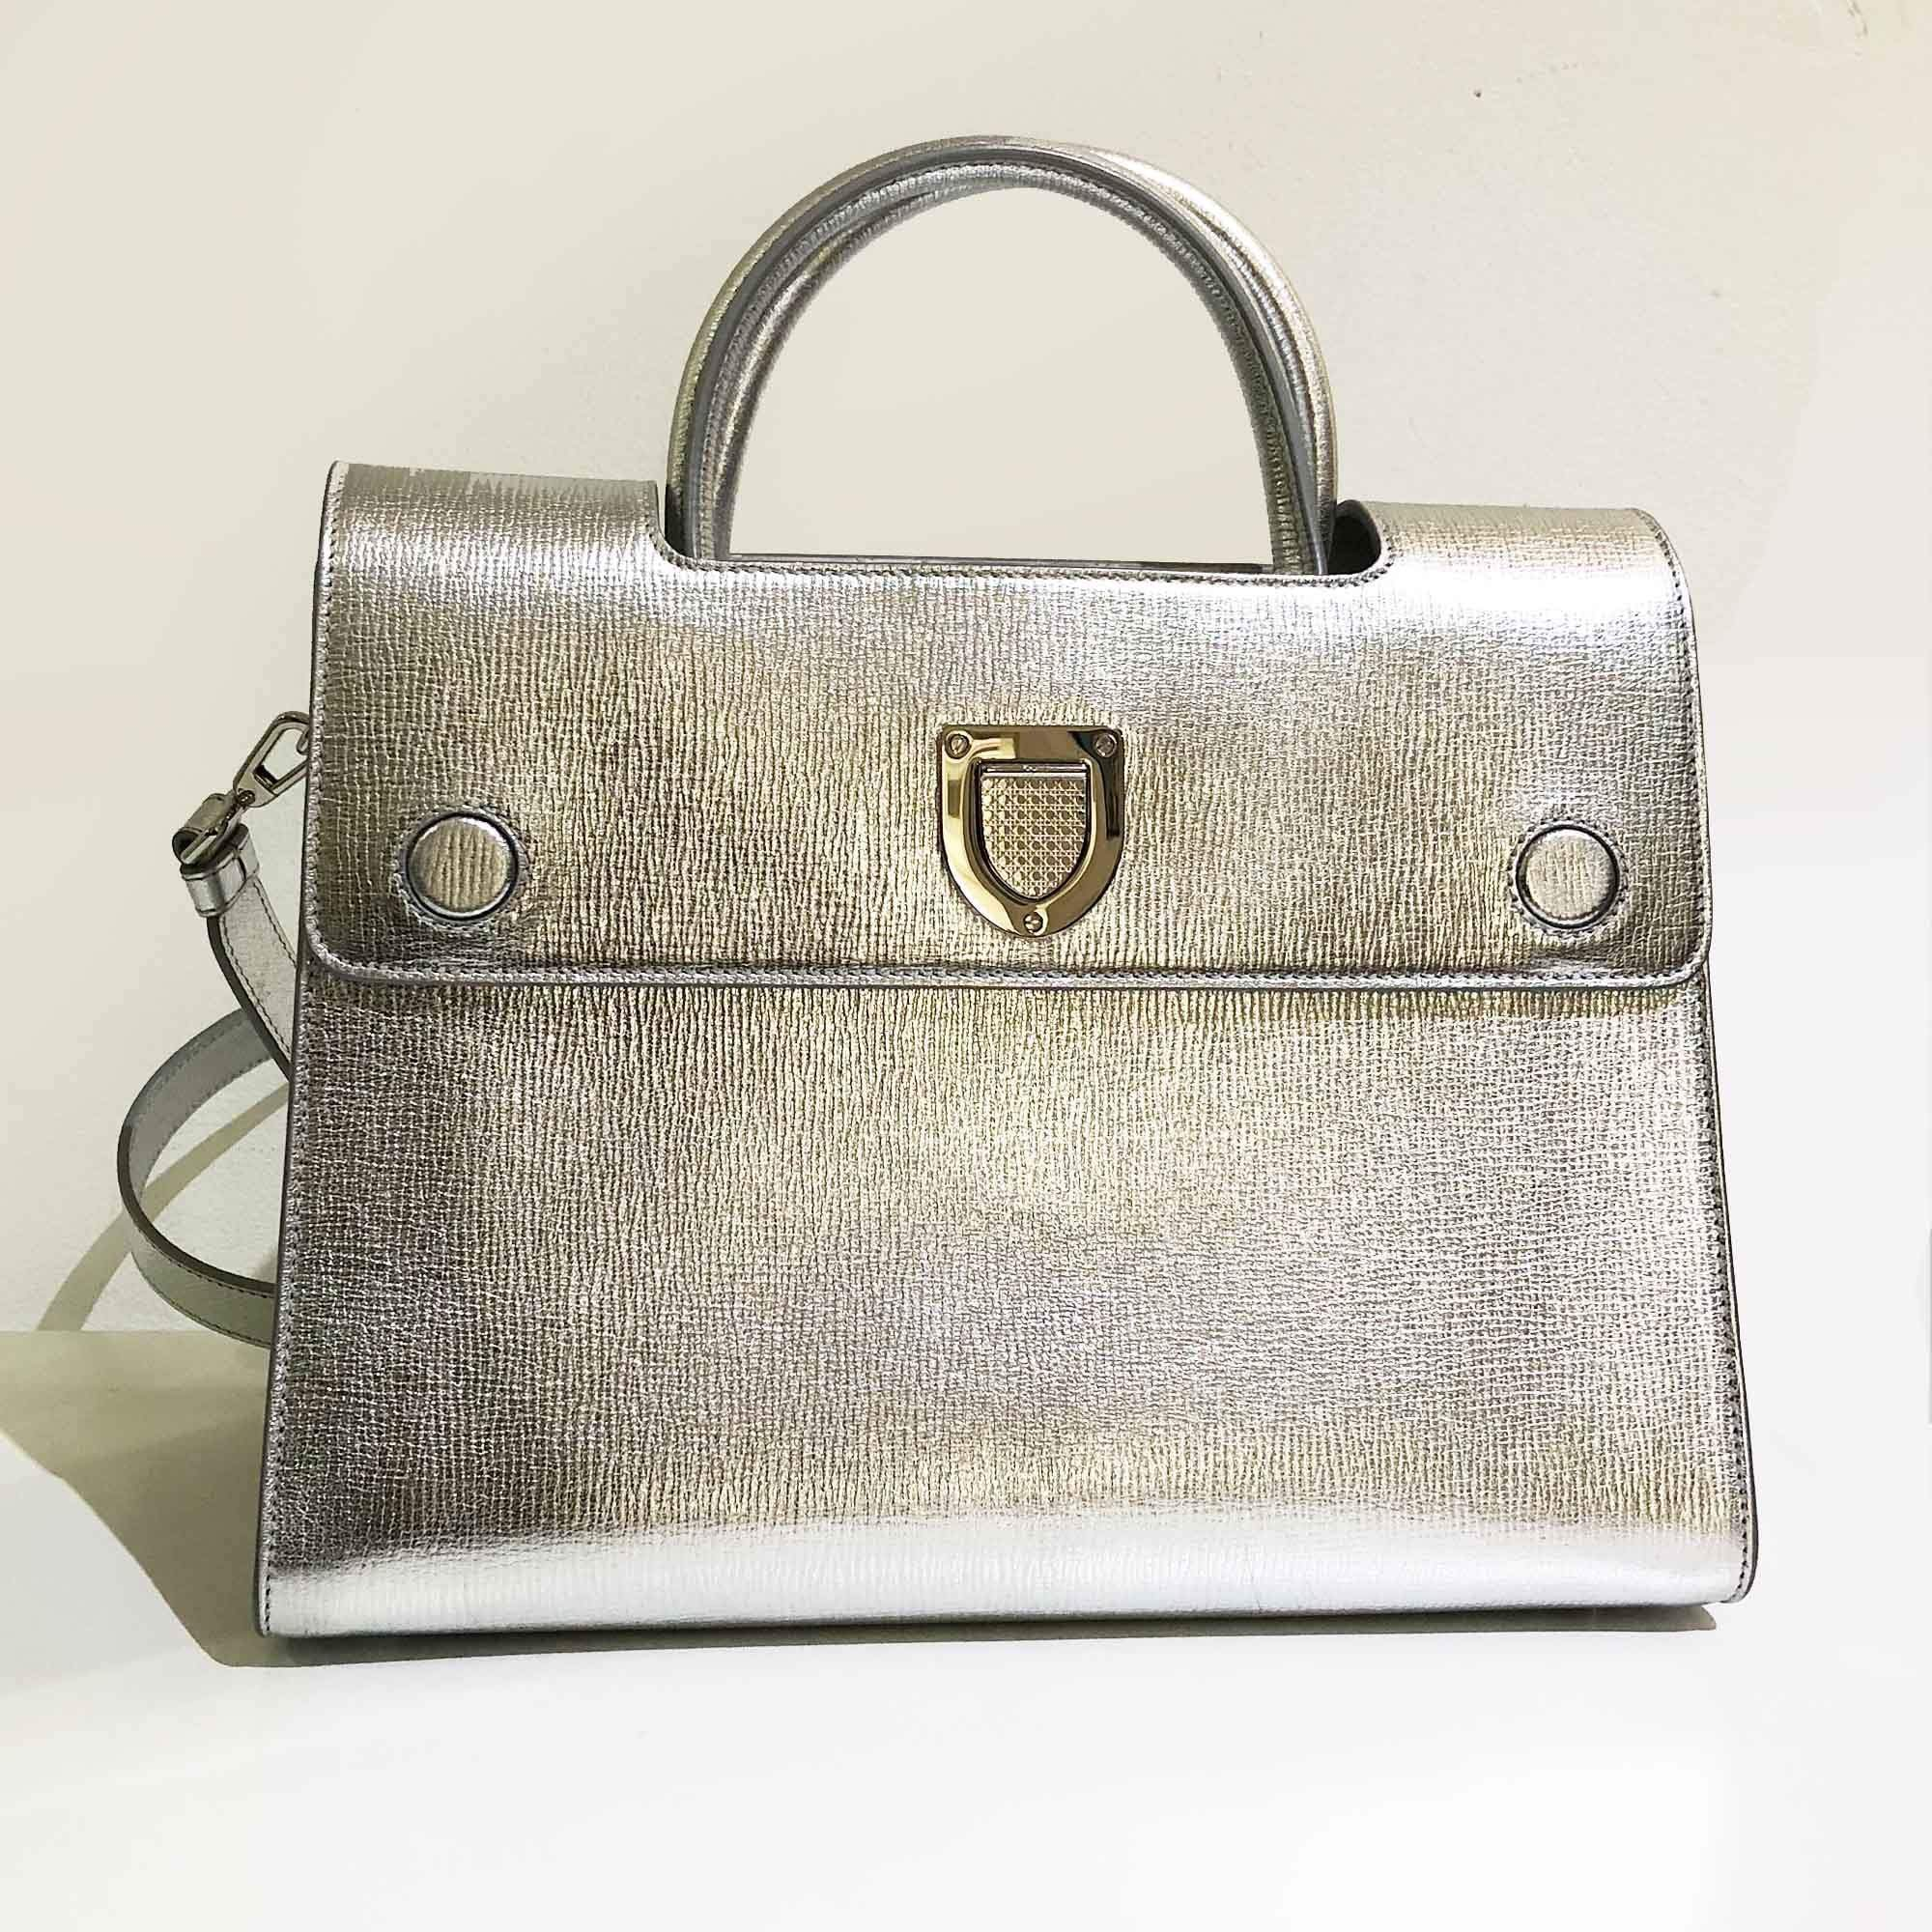 Christian Dior Grained Leather Medium Diorever Flap Silver